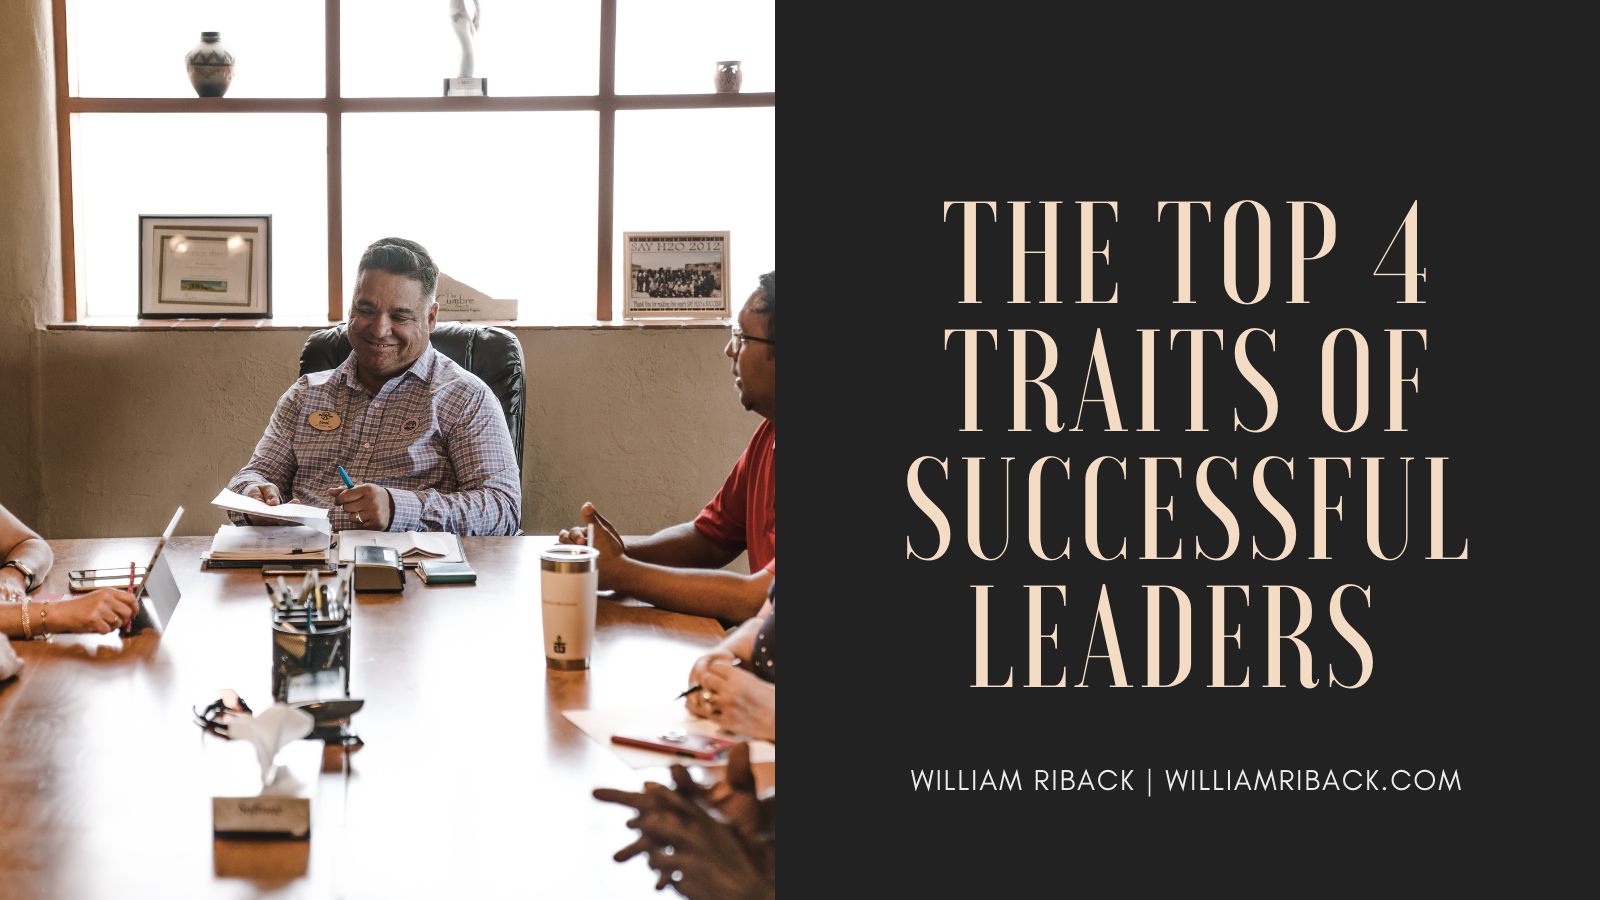 Top 4 Traits of Successful Leaders William Riback